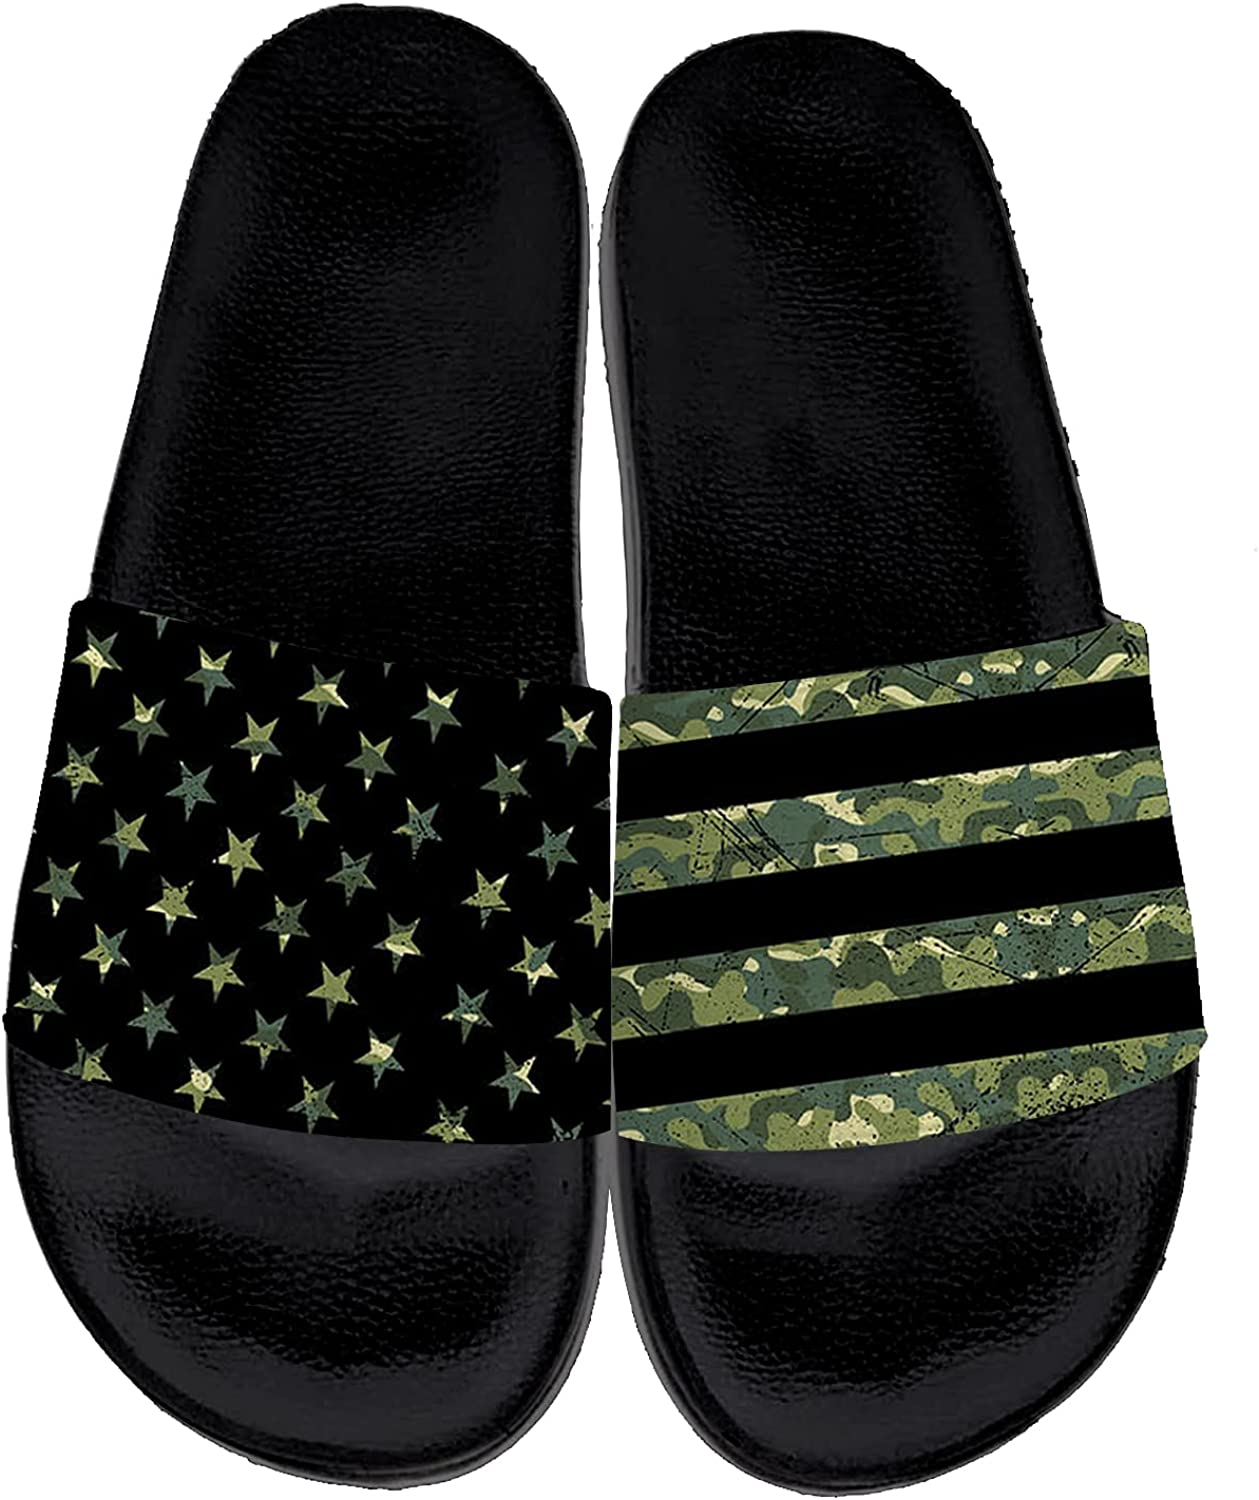 Military Camo Flag Sandals for Men Women Personalited Camouflage Flag Slippers Casual Soft Non Slip Slides Indoor Outdoor Gifts for 4th of July